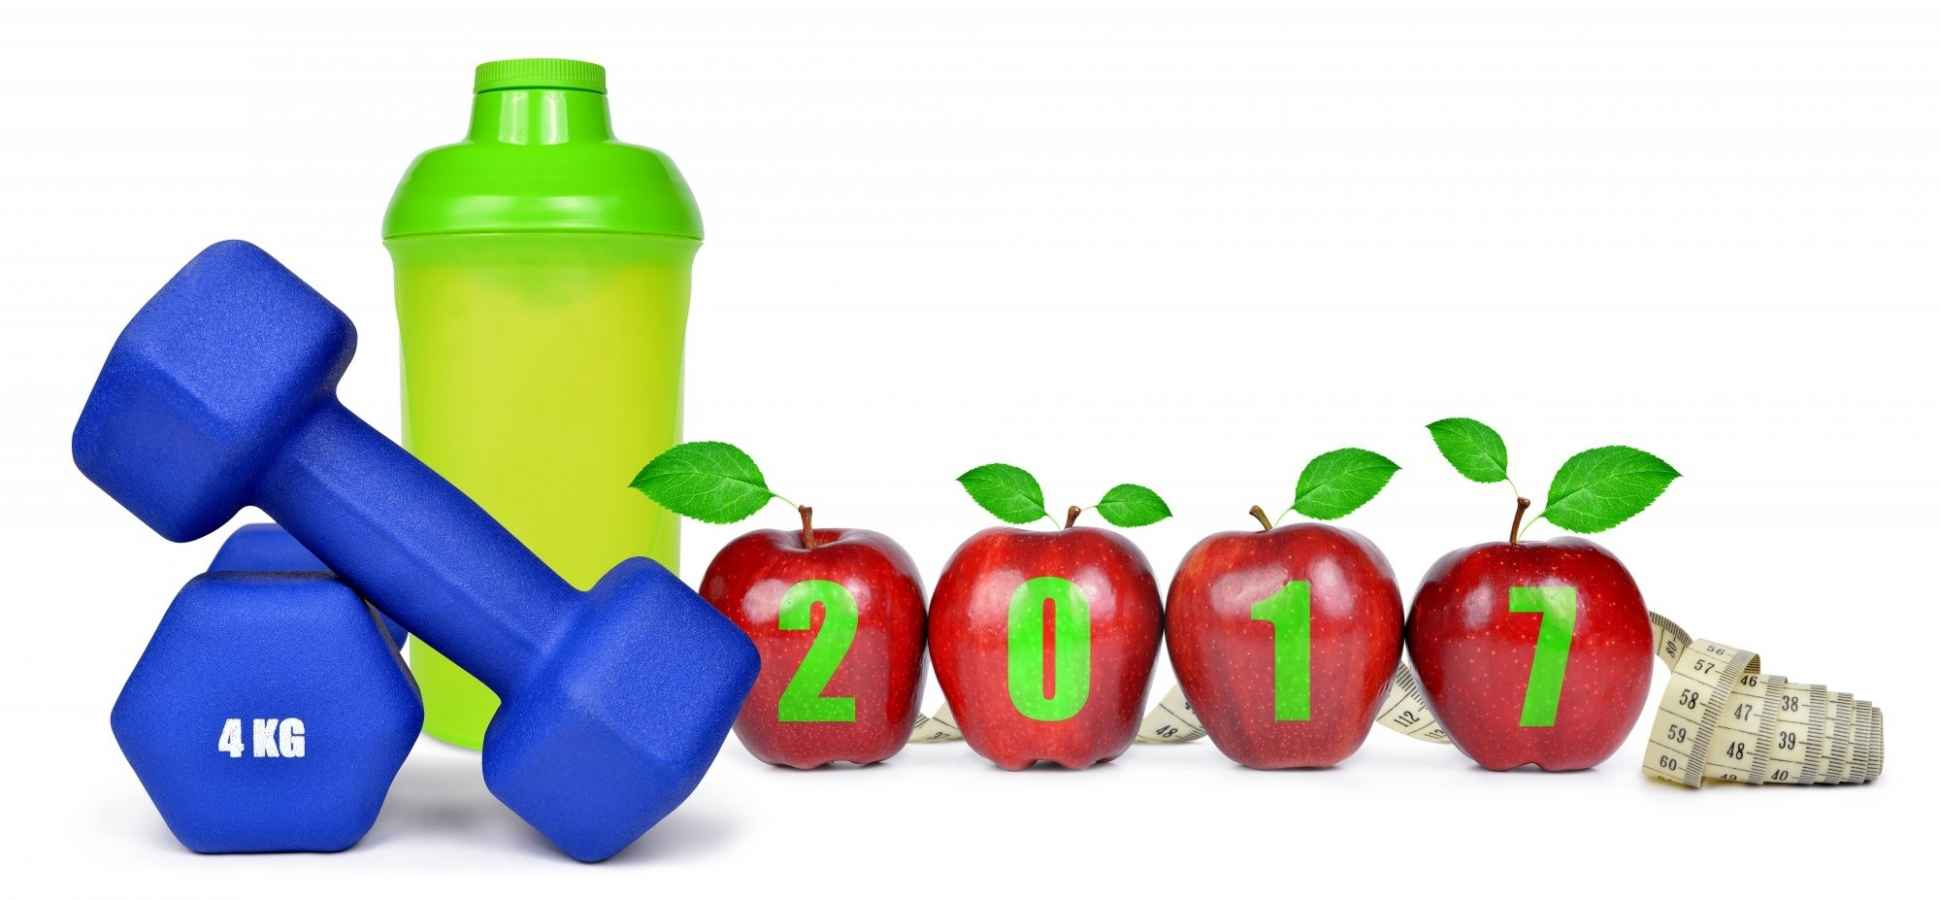 A Foolproof Way to Set, Stick With, and Accomplish Your New Year's Resolutions